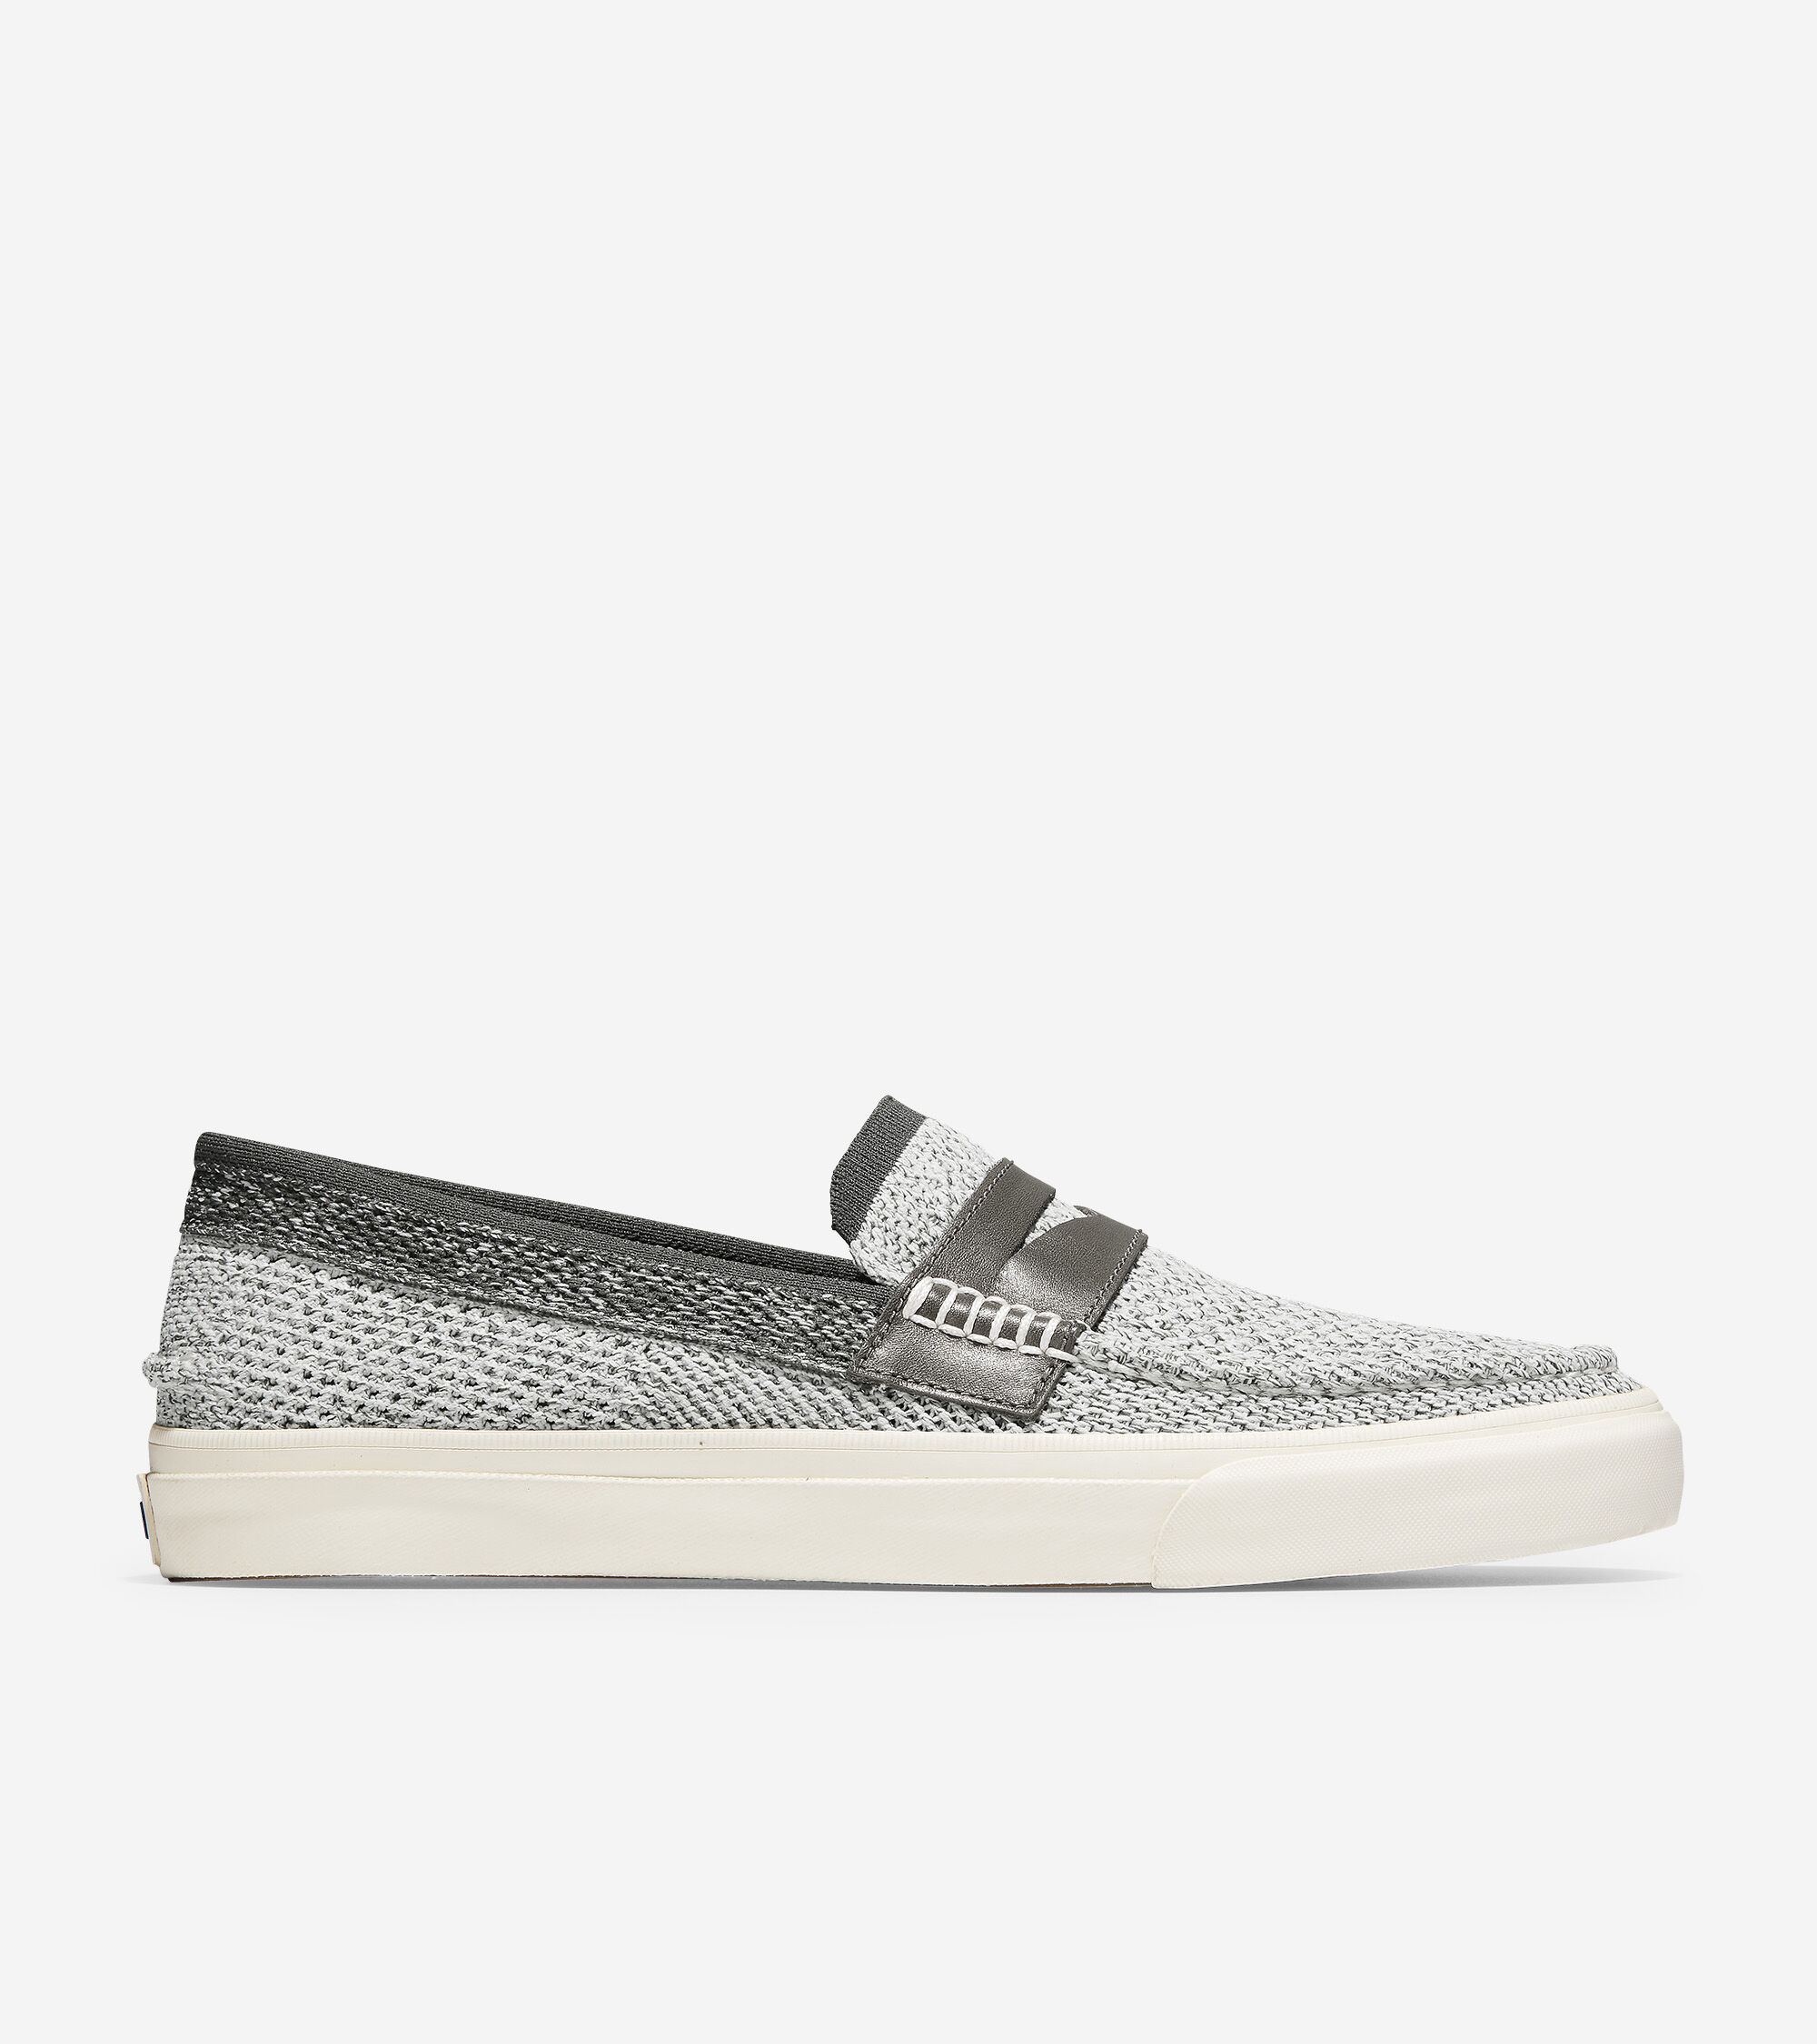 d921ddaff2d Men s Pinch Weekender LX Loafers with Stitchlite in Lunar Rock ...